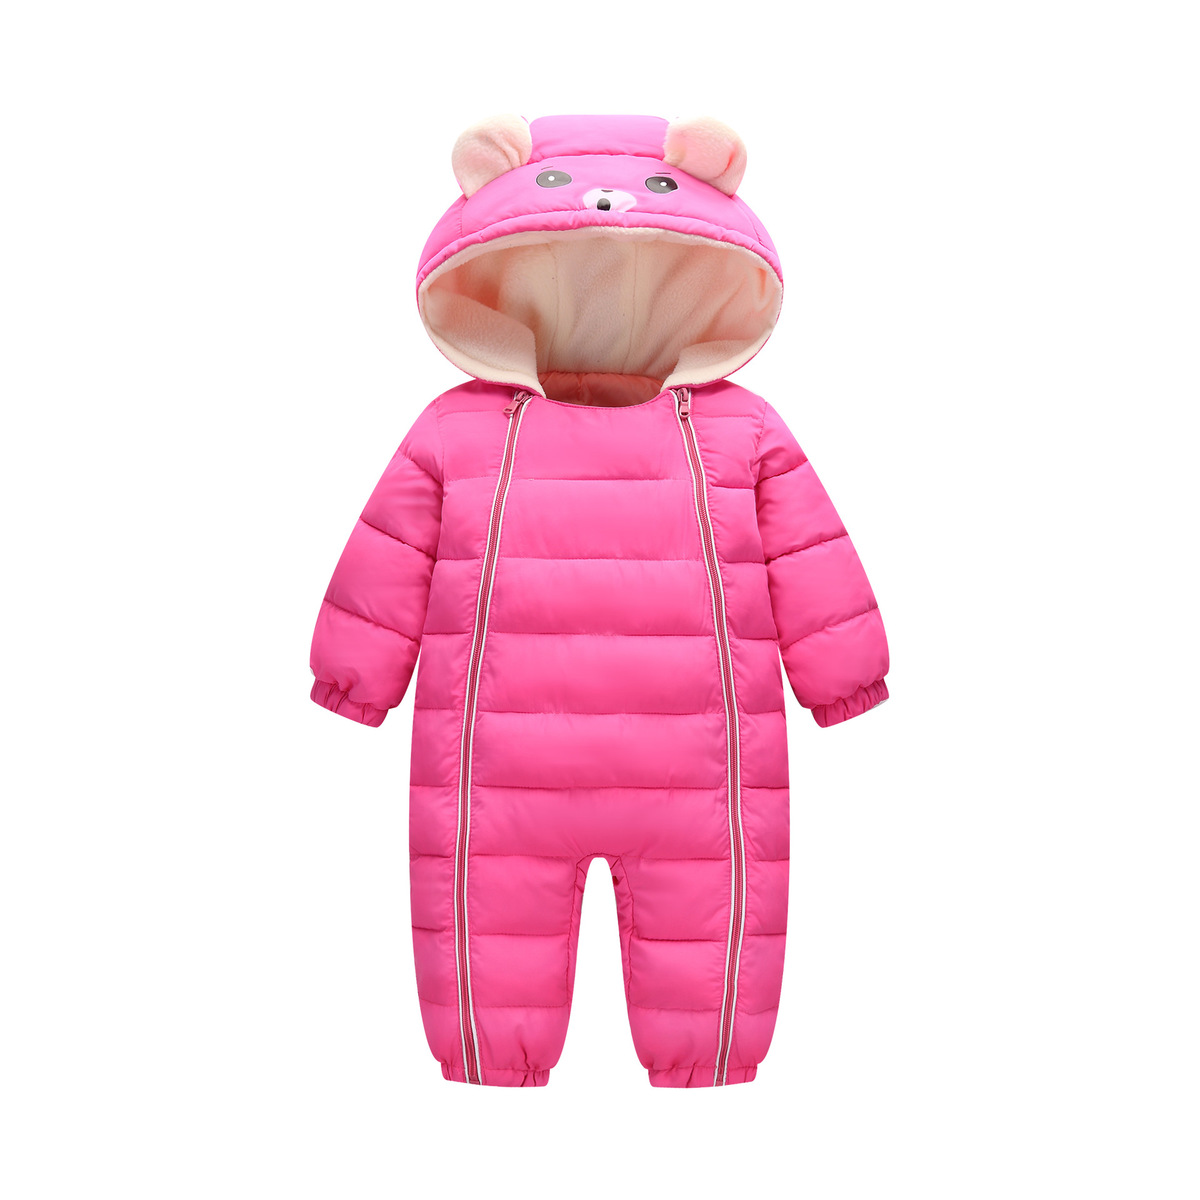 e2ab22586 2018 Winter Baby Snow Wear Thick Warm Girl Clothes Newborns ...